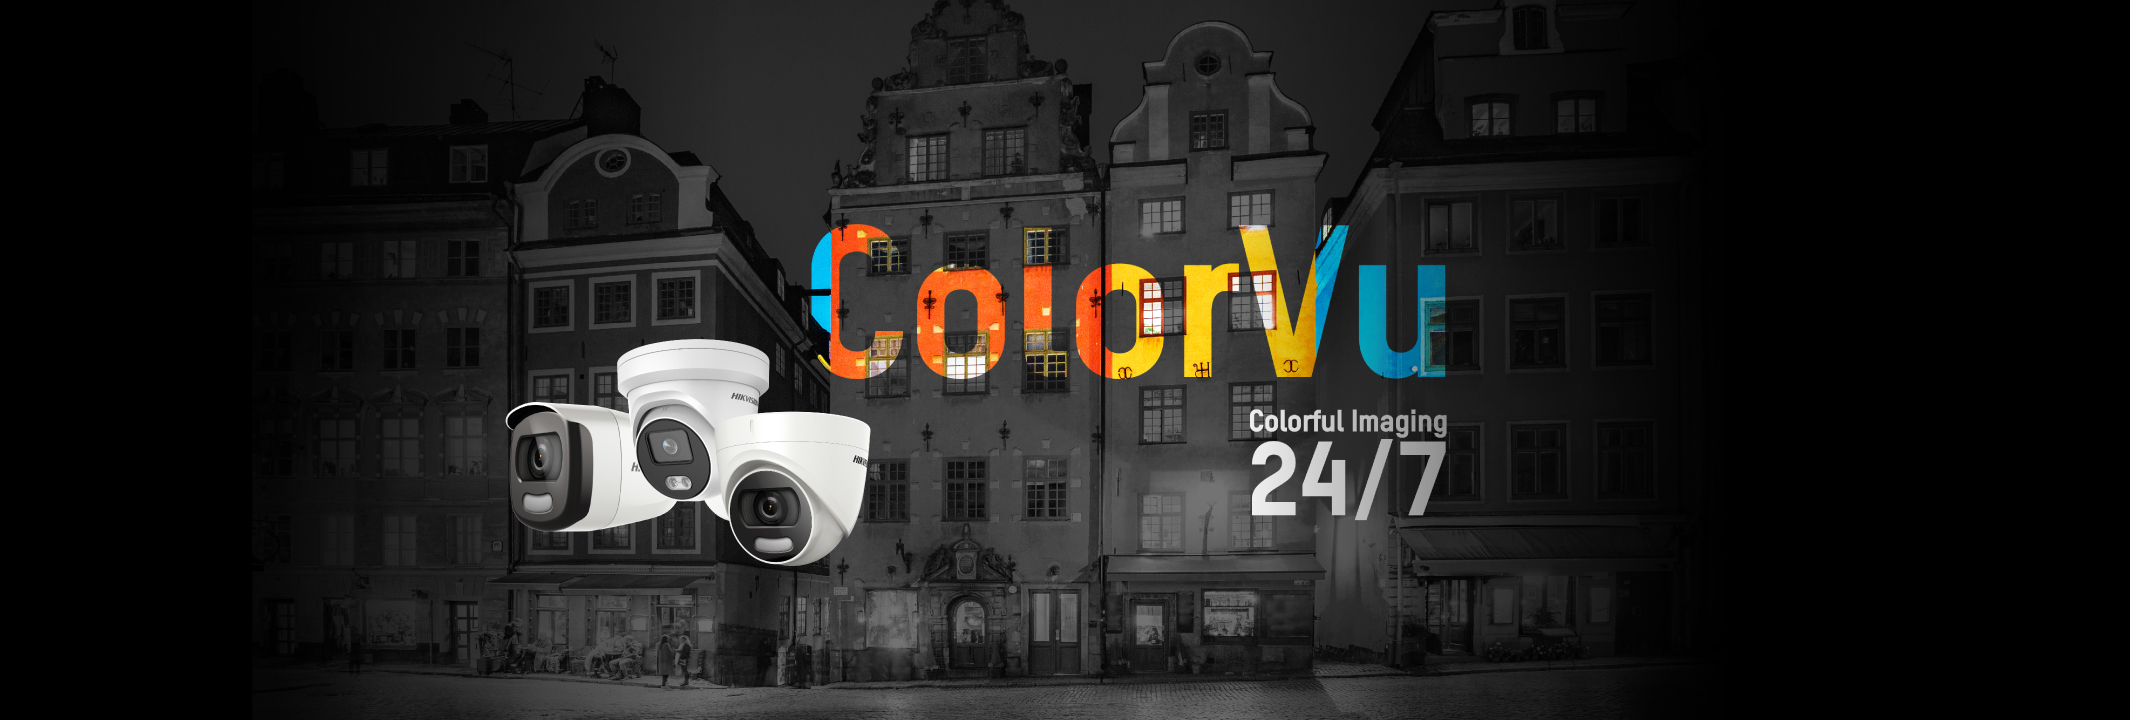 New-ColorVu_Homepage-Web-Banner_2130x720px_ENG